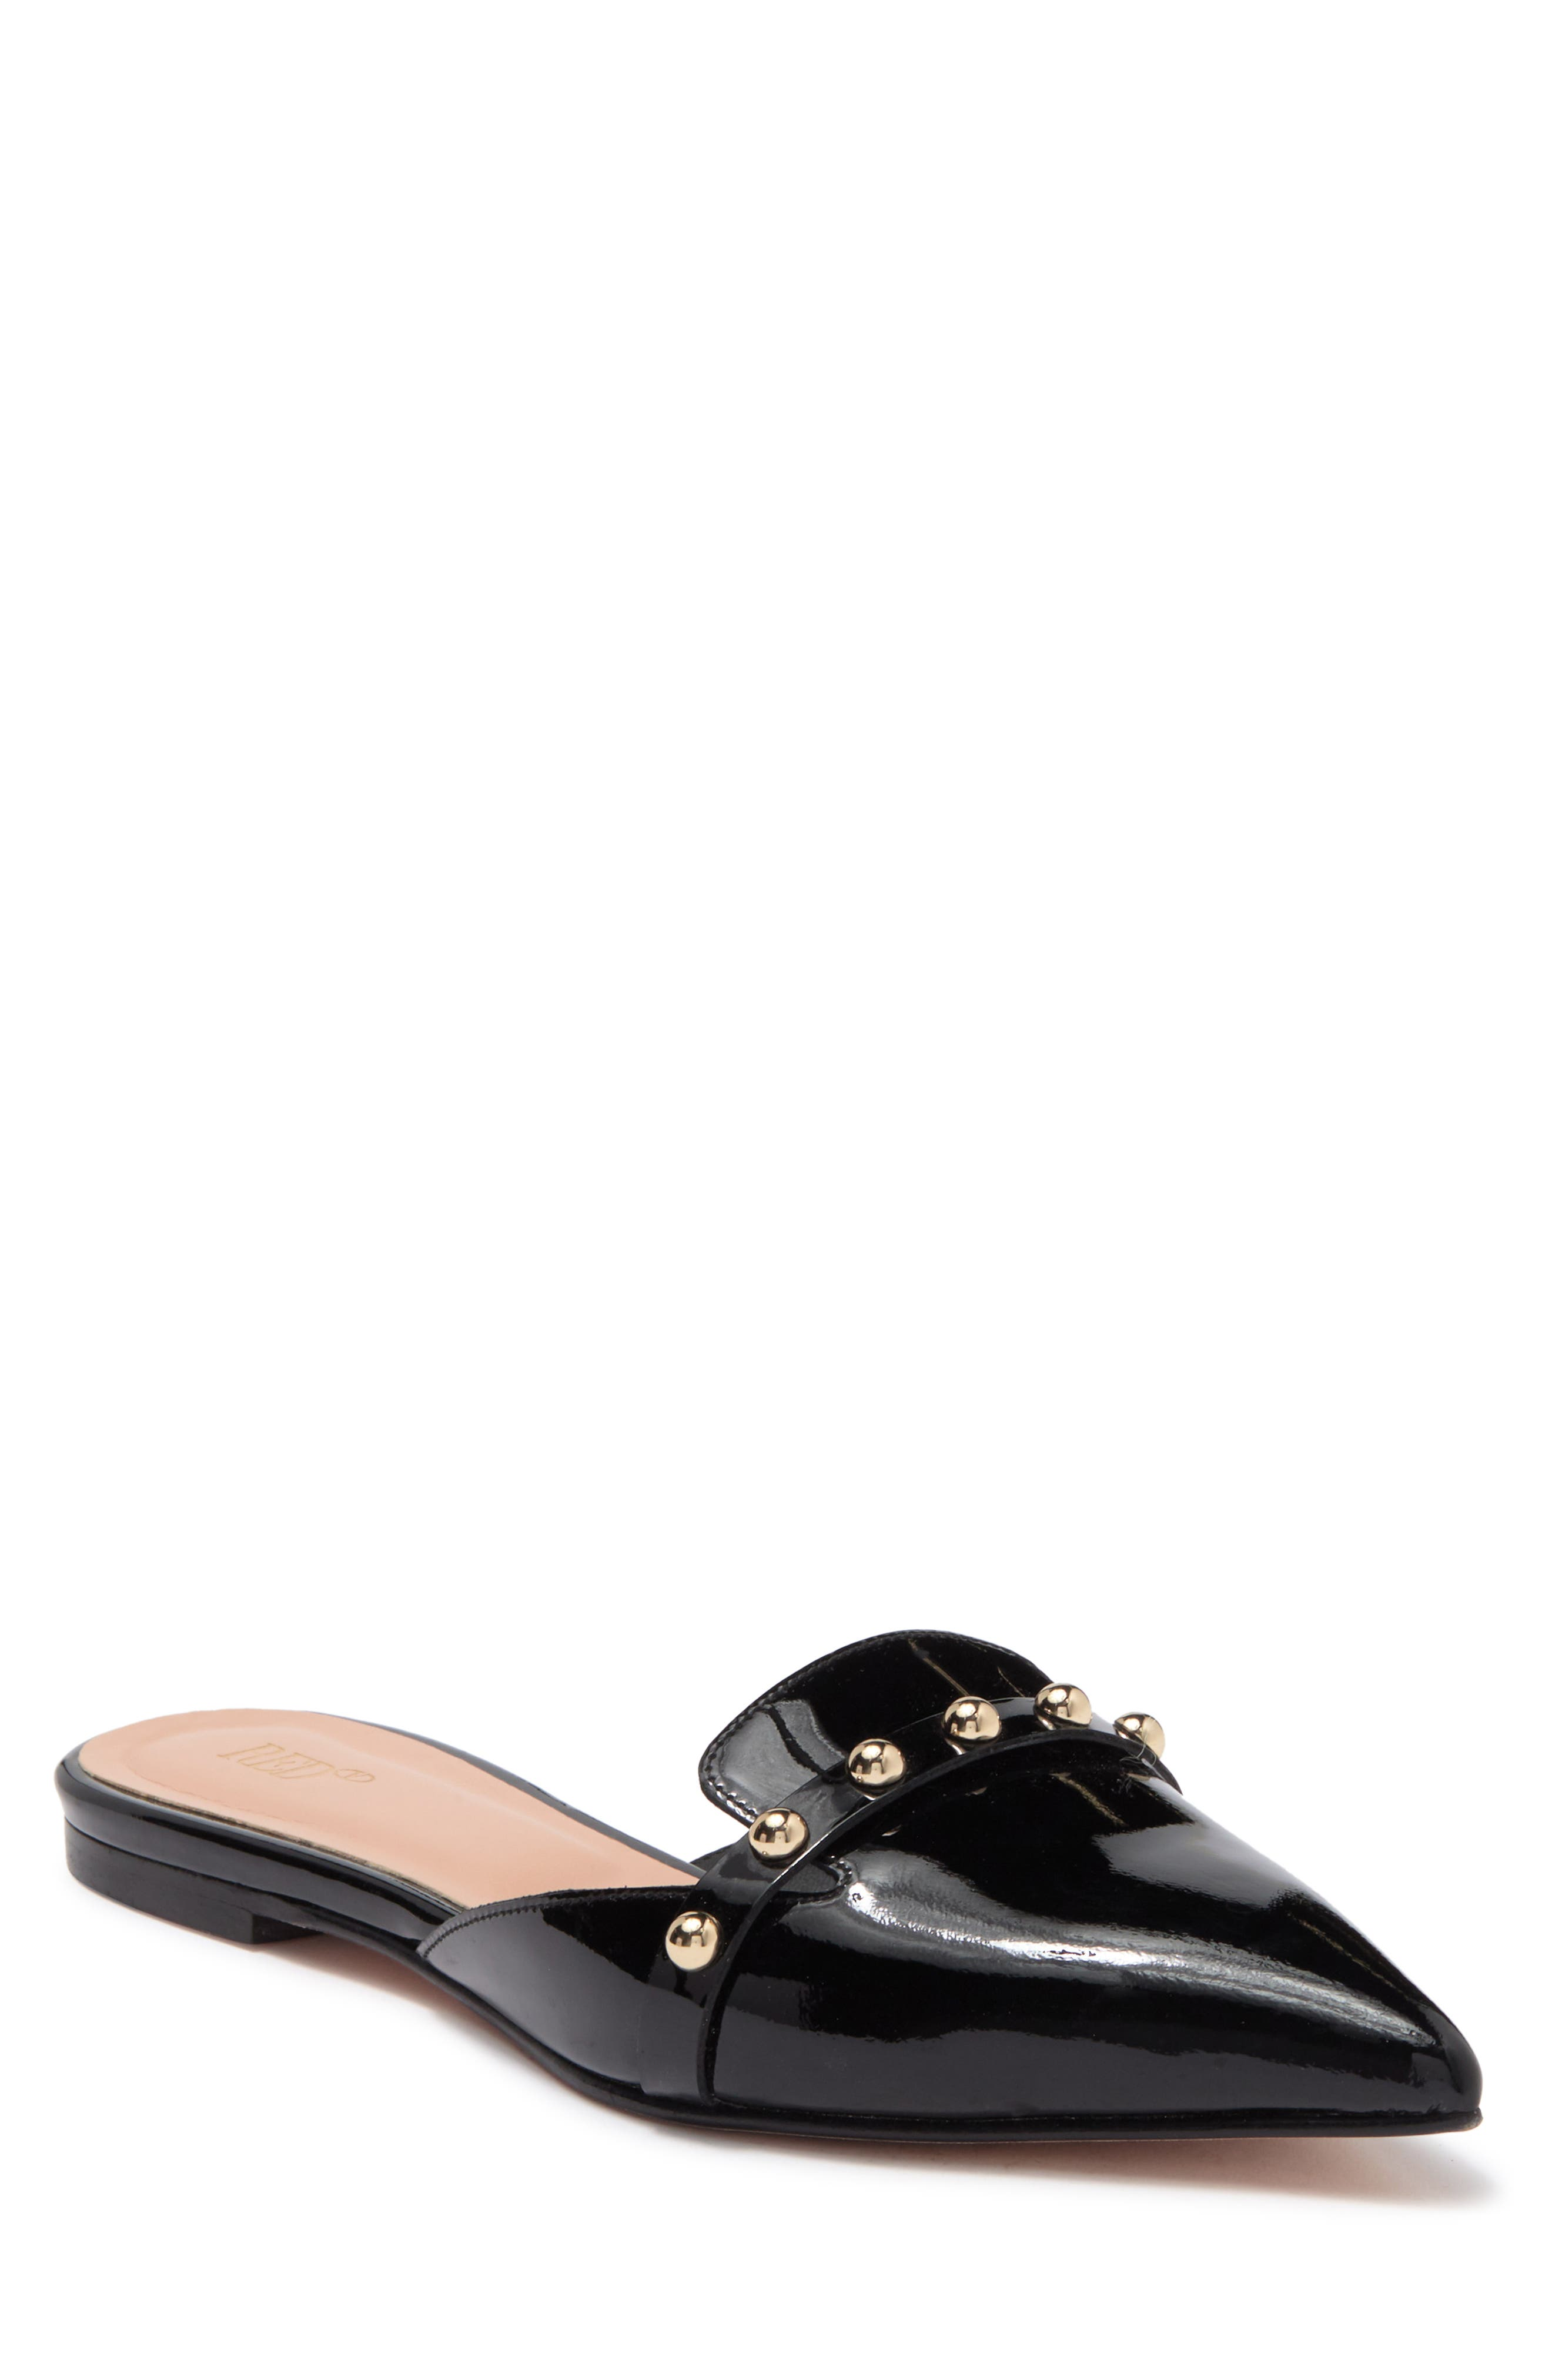 Red Valentino Pointed Toe Leather Studded Slipper In Nero